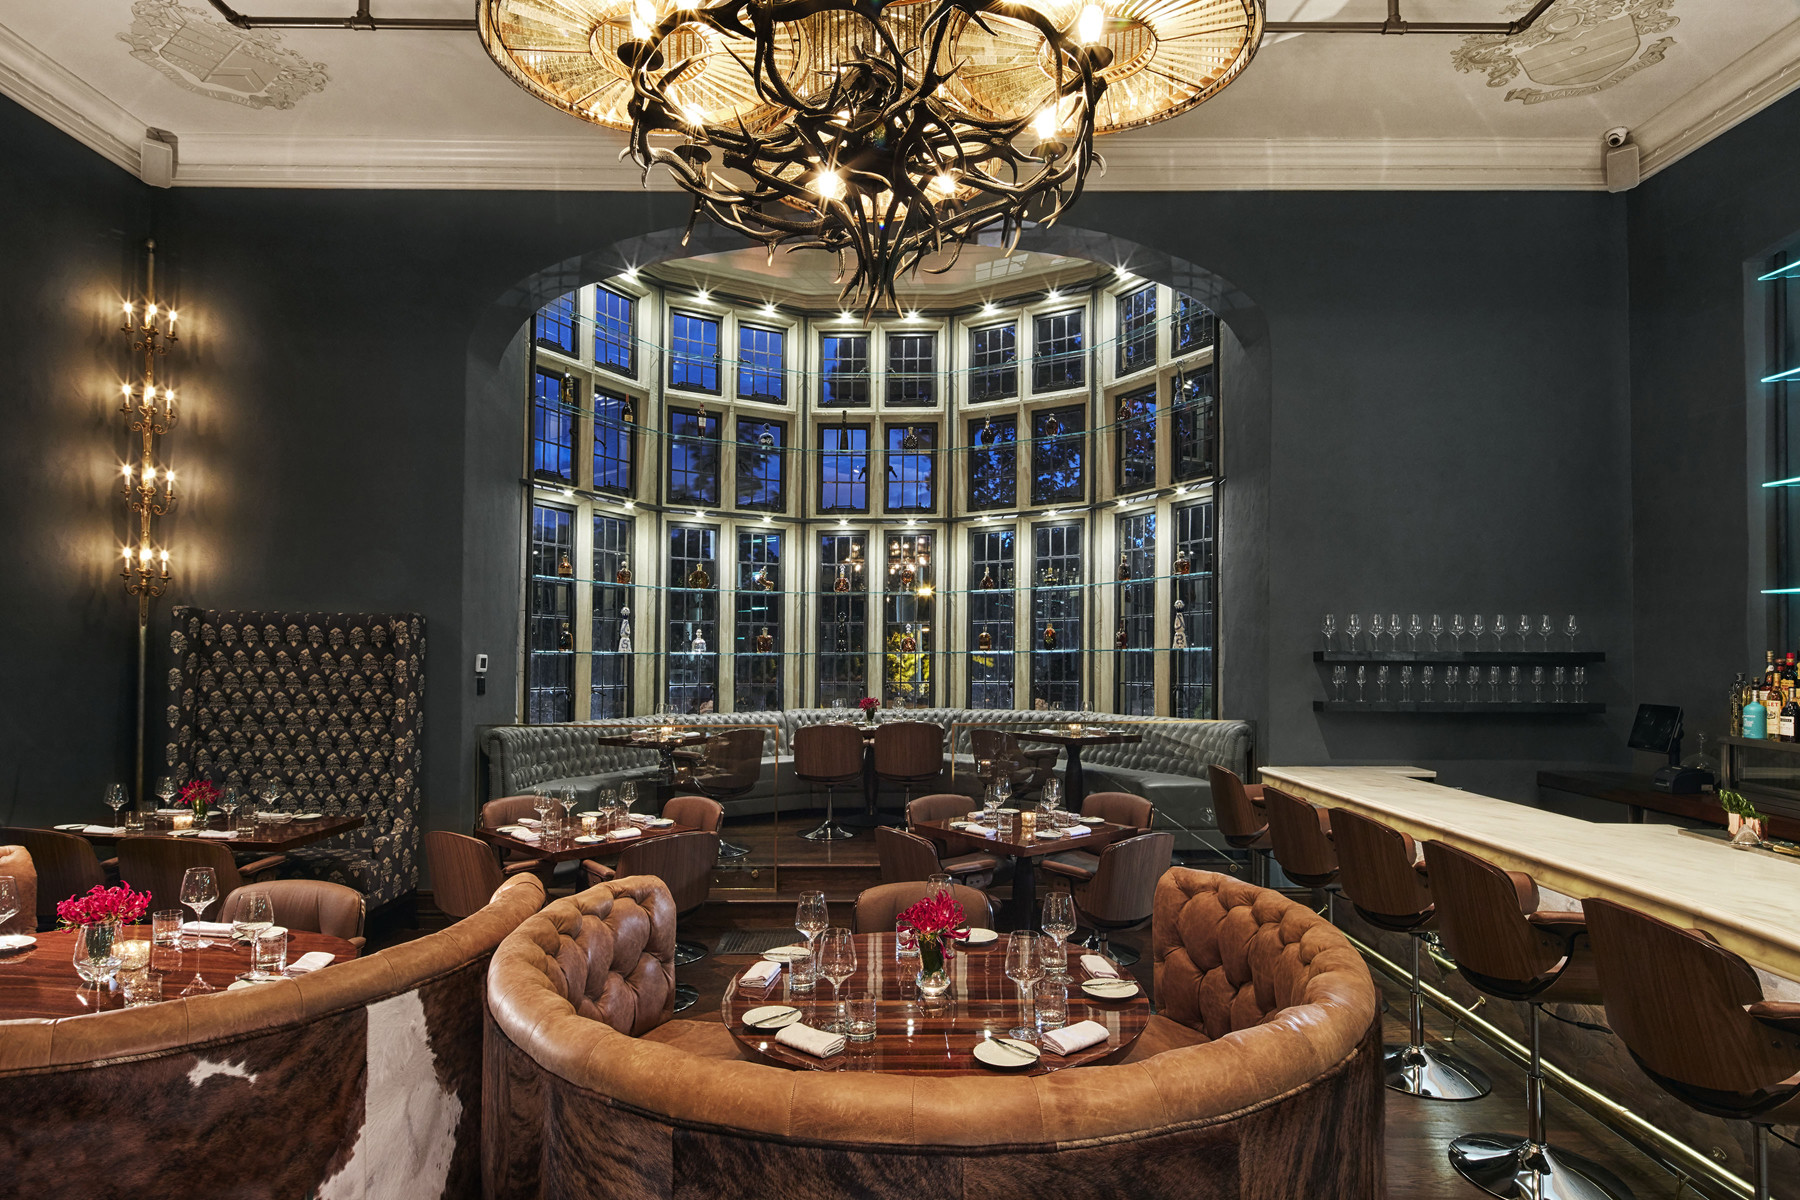 Central curved arched leaded glass window with banquet and leather semi-circle dining booths with bar seating on right